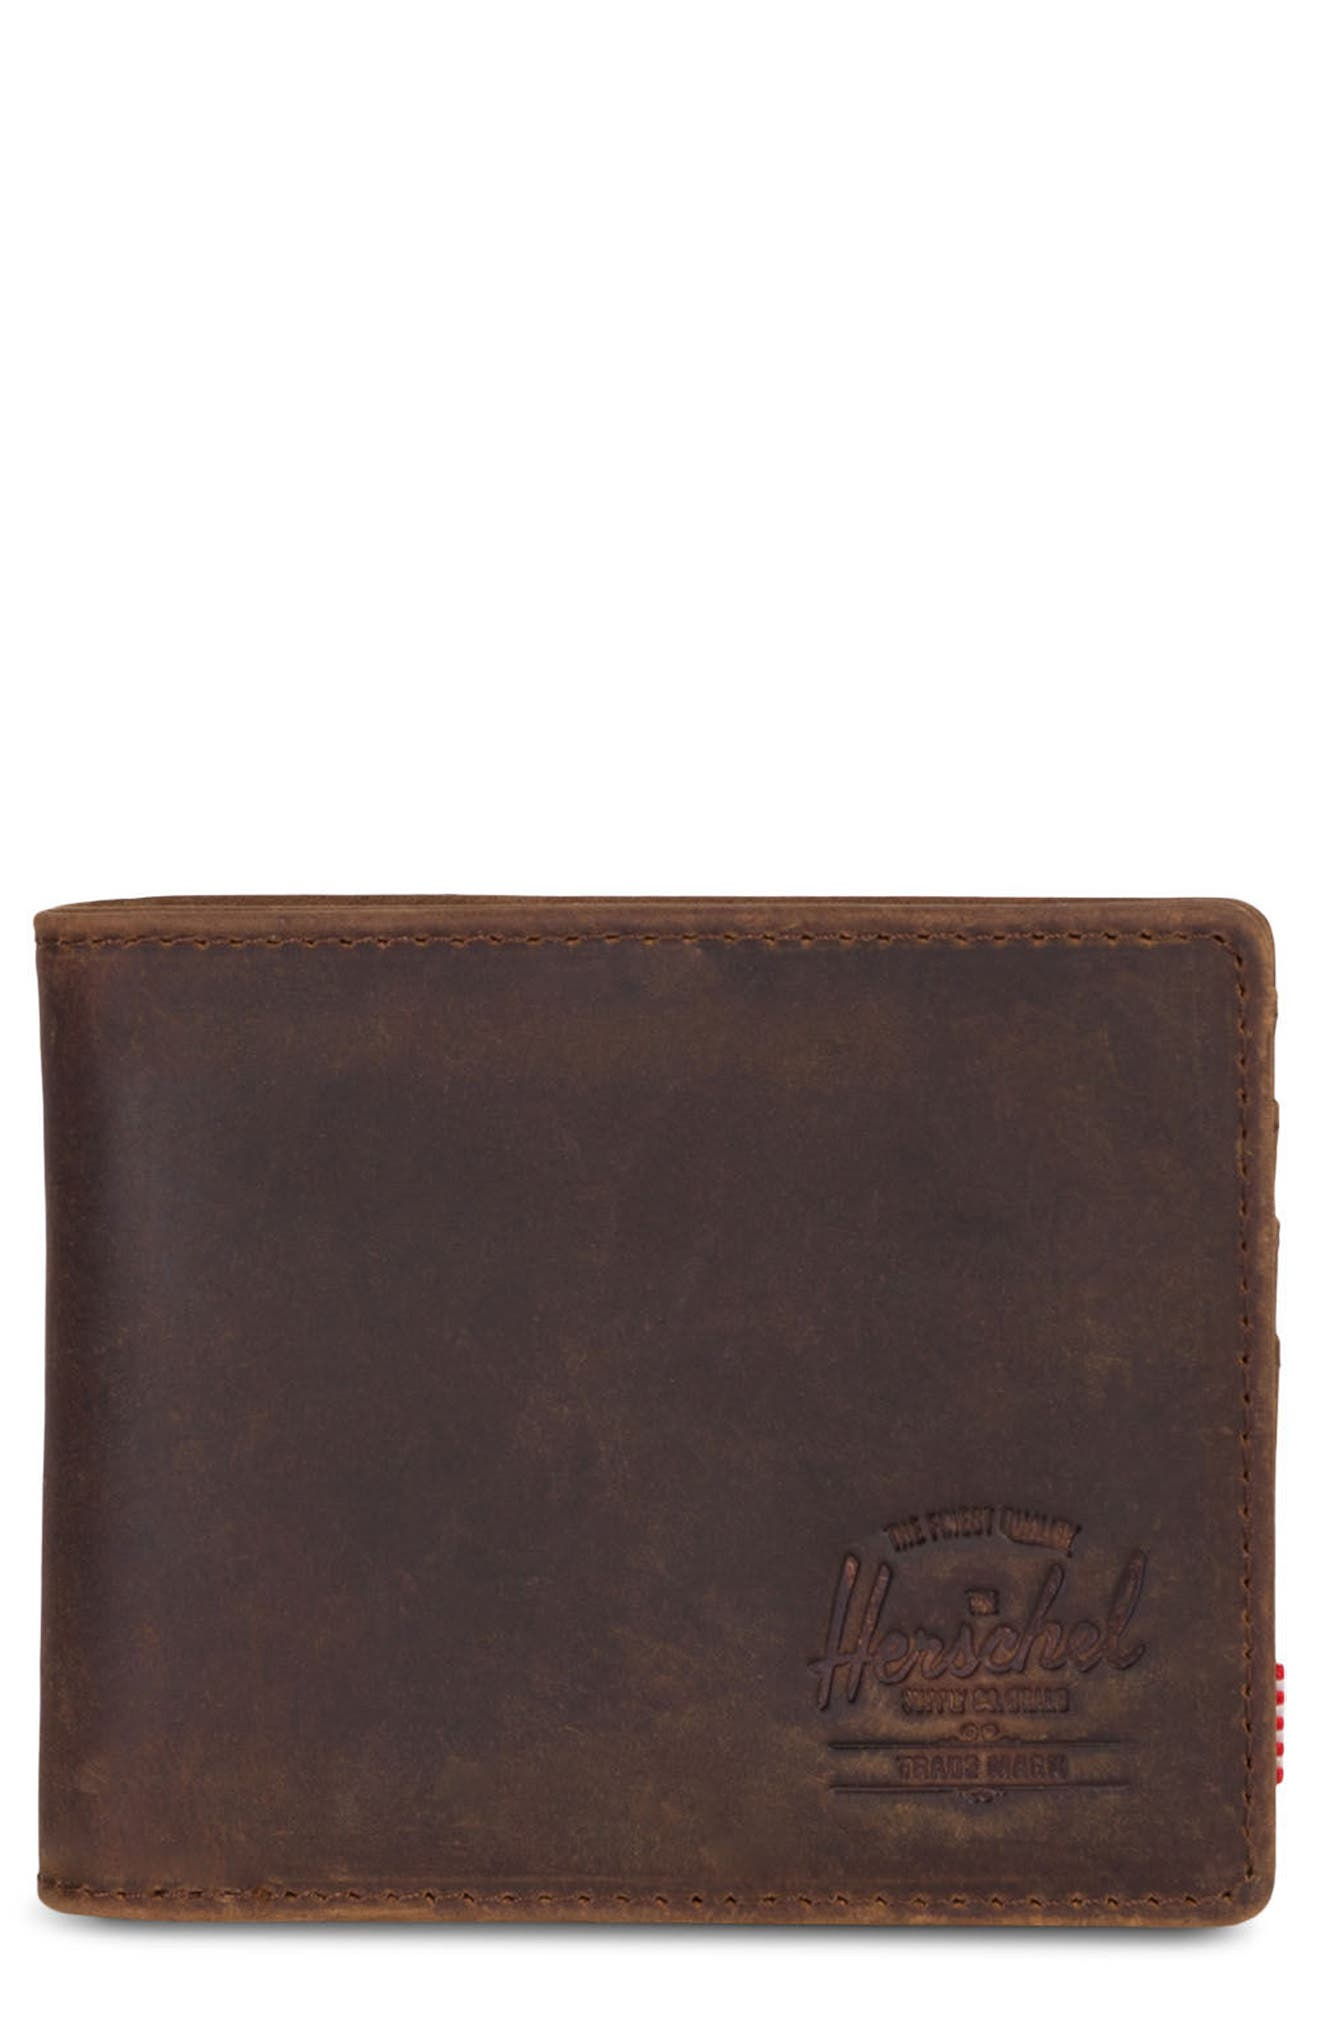 Roy Leather Wallet,                             Main thumbnail 1, color,                             210